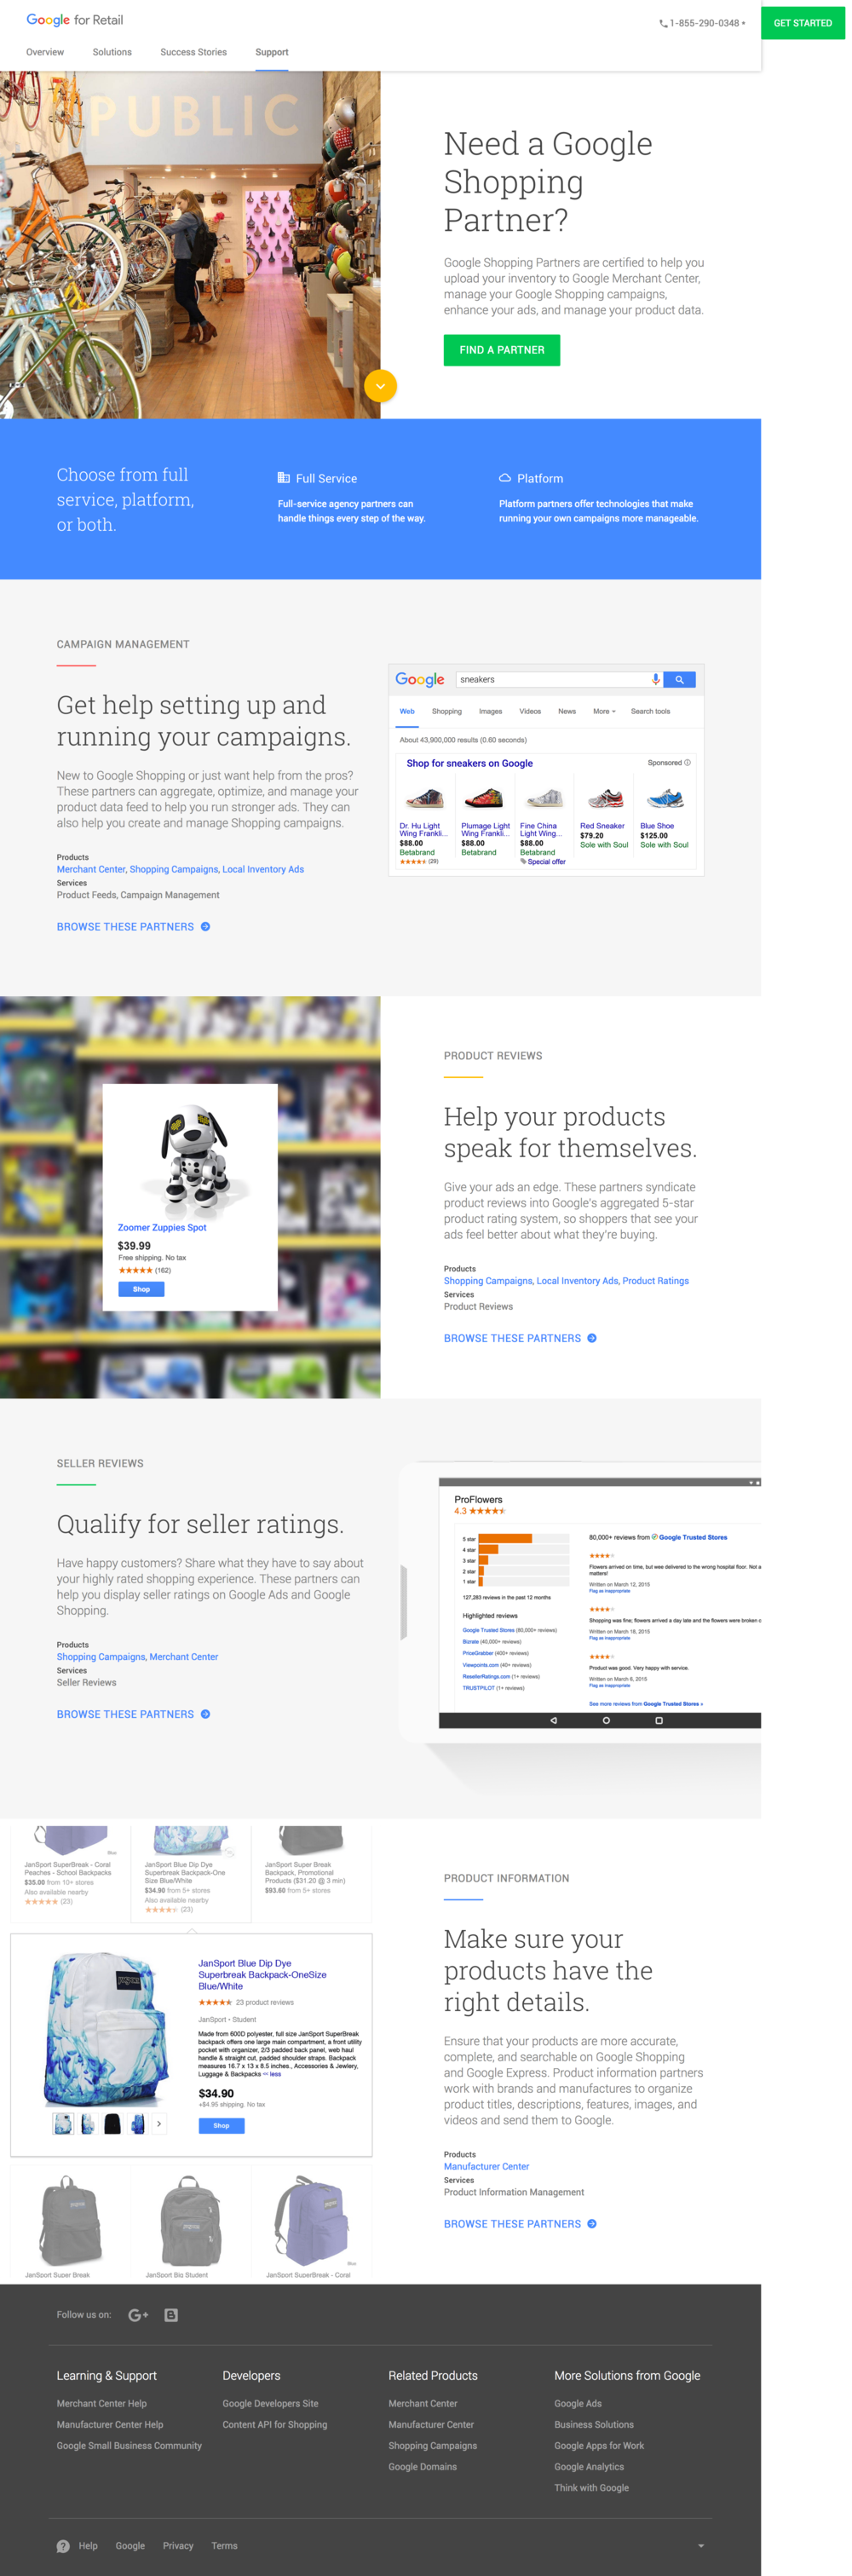 screencapture-google-retail-get-help-partners-2018-10-12-15_31_07.png